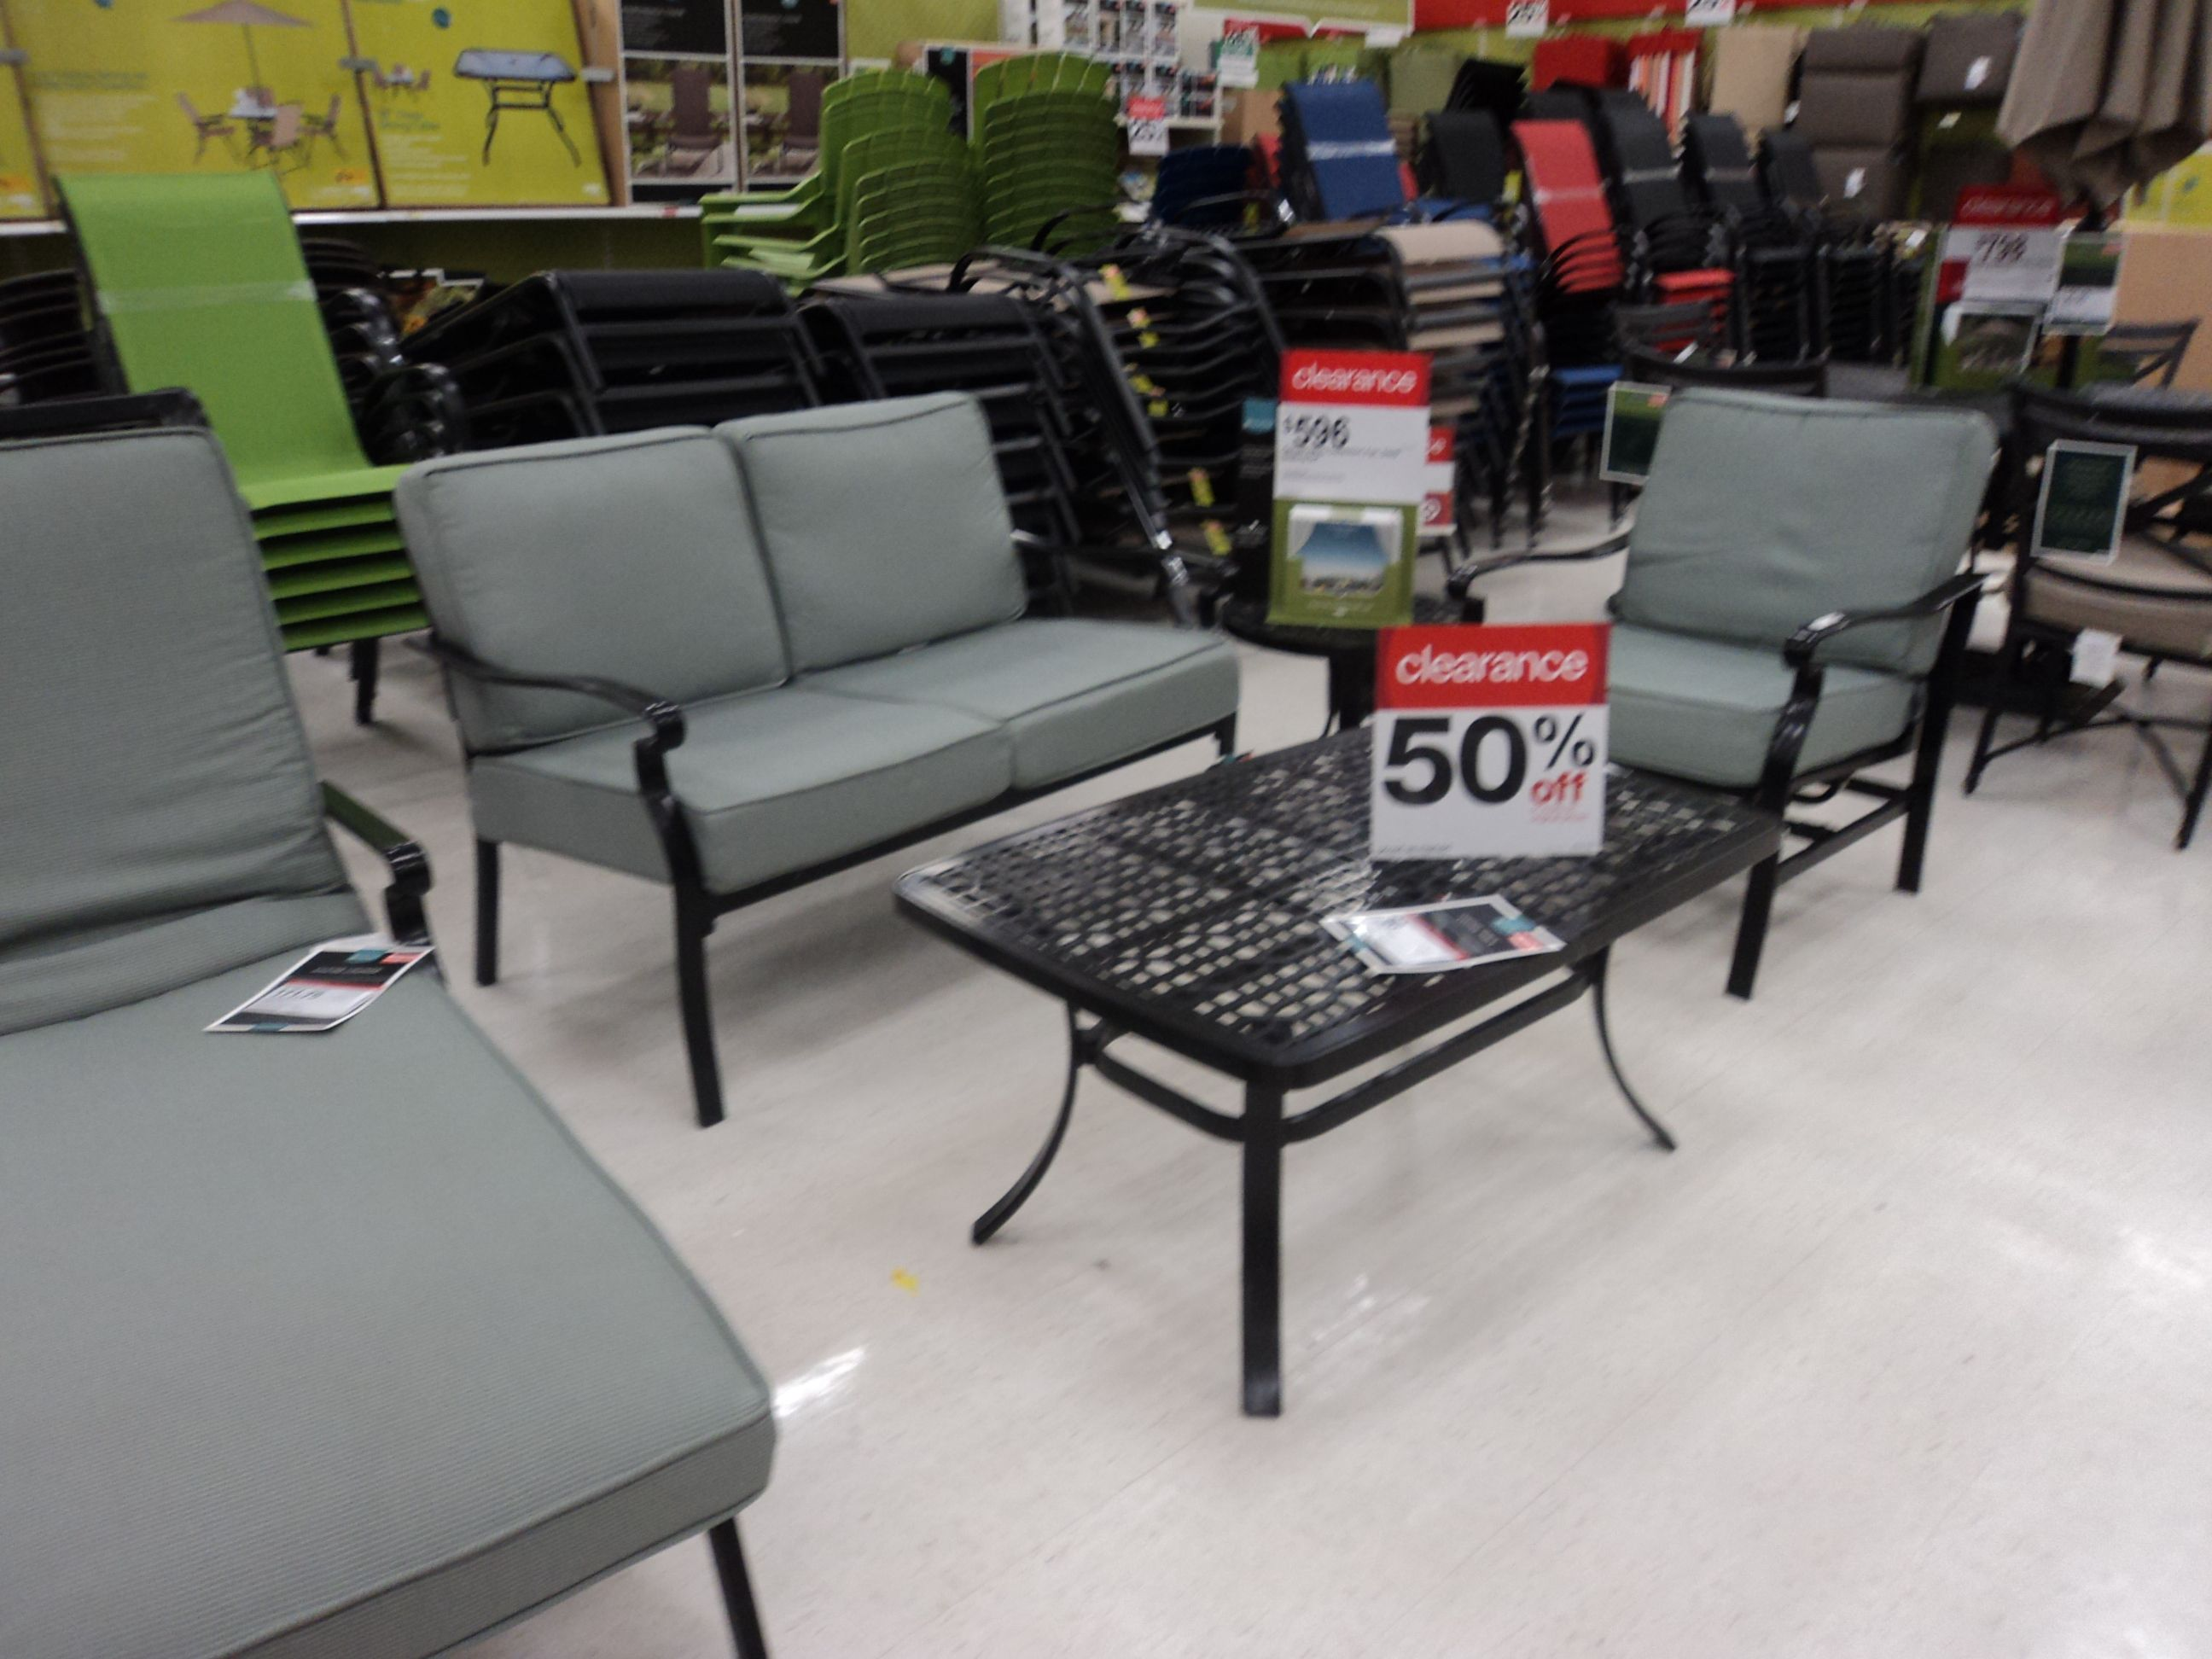 Patio Furniture Clearance Target Clearance Save 50 On Patio Sets